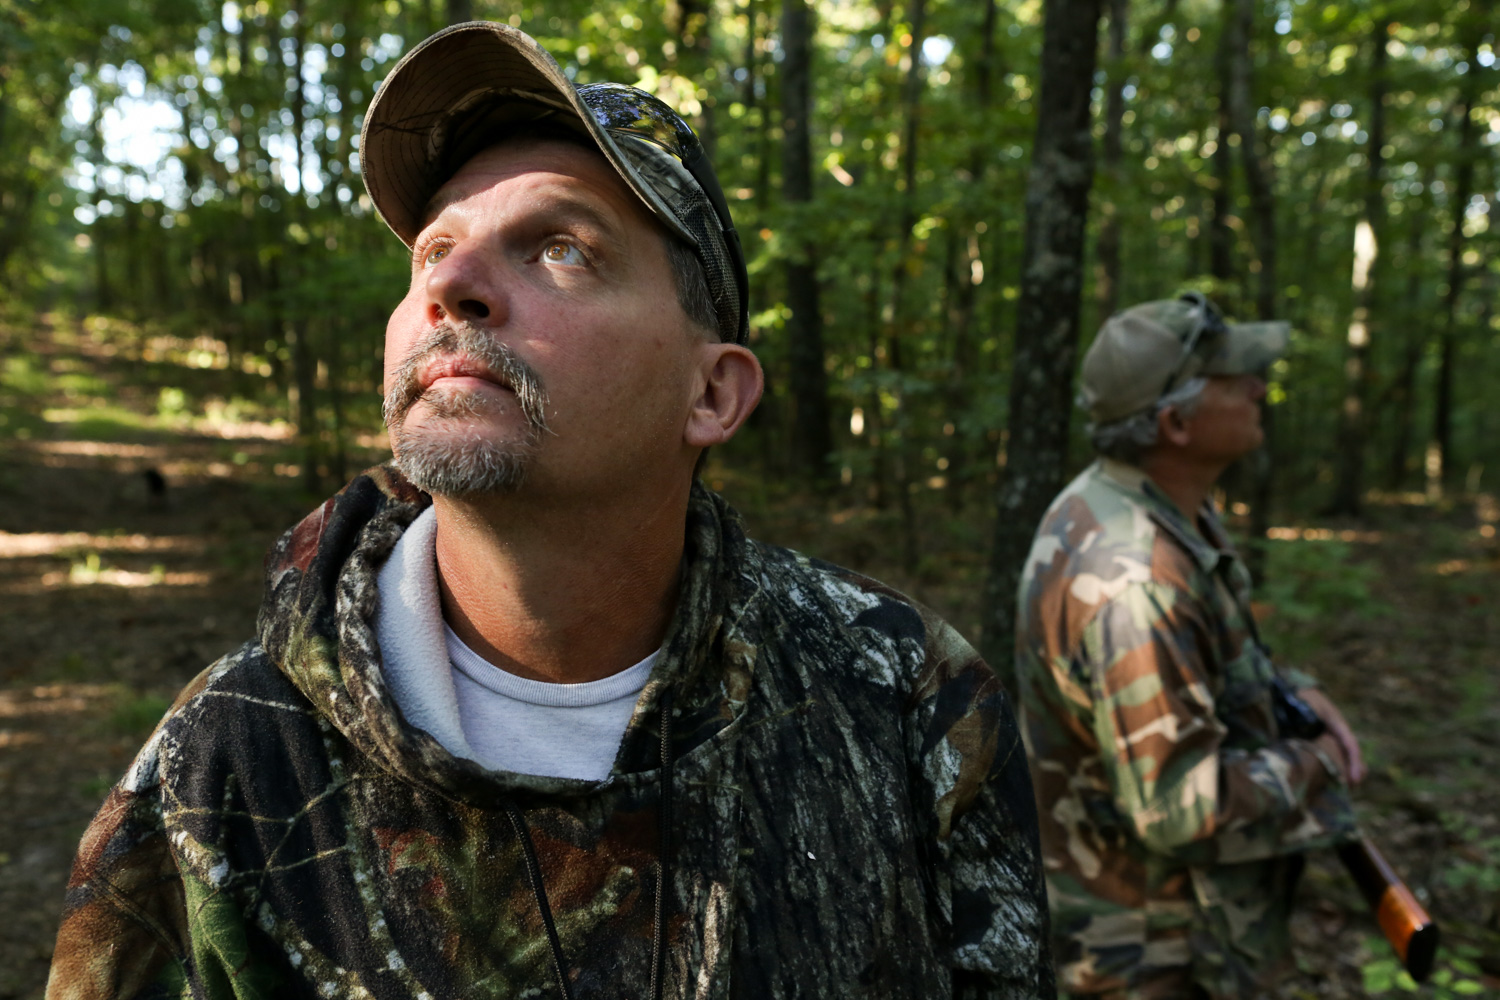 Joe Hoeckele (left) and Paul Hoeckele (right) hunt in the forest that spans their family's 600-acre farm. Avid hunters since childhood, they most often hunt for squirrel, rabbit and deer.